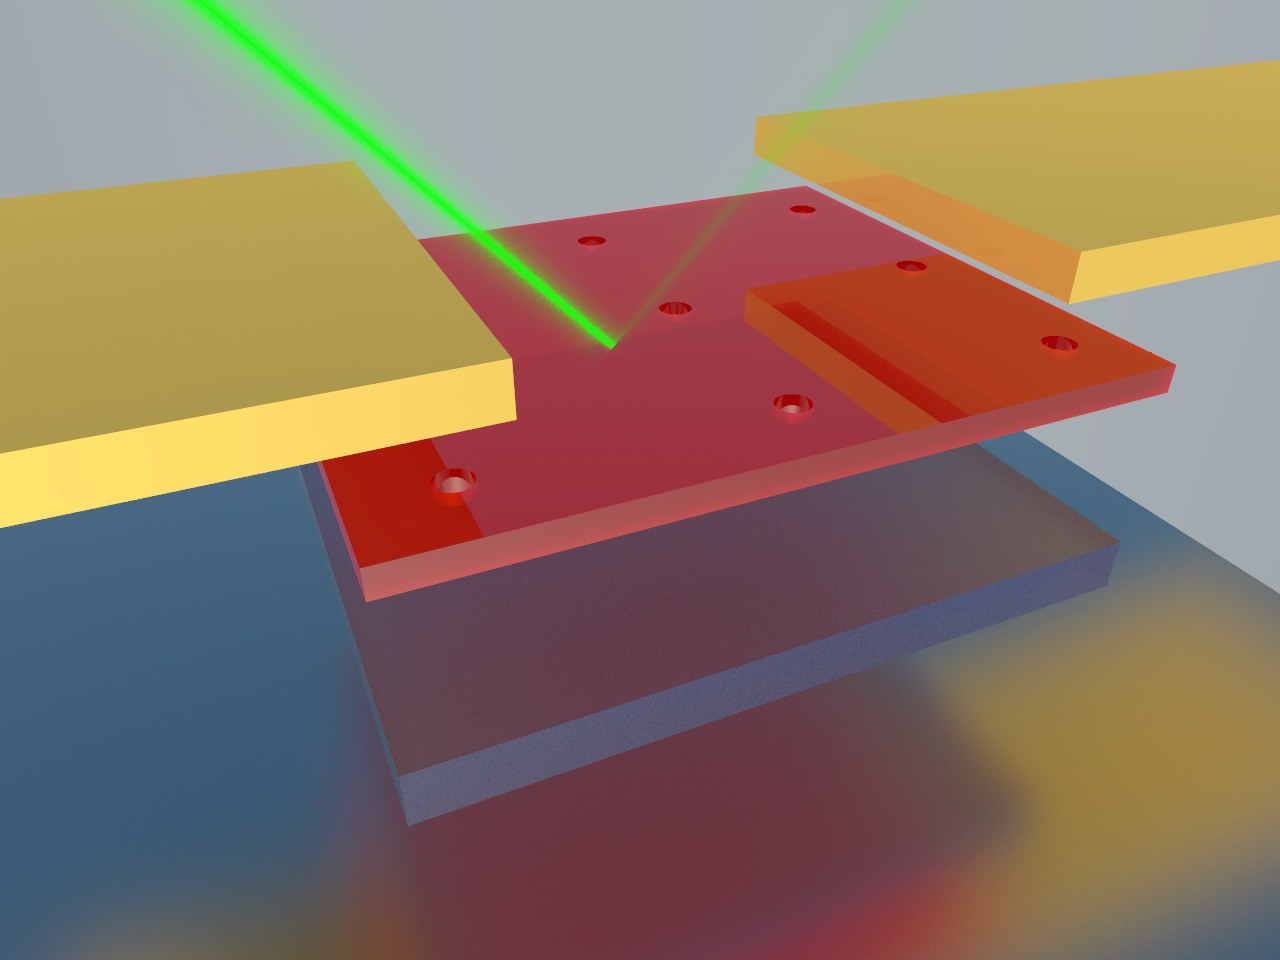 Tuned to absorb specific light wavelengths, the new photodetector consists of nanocavities sandwiched between a ultrathin single-crystal germanium top layer and reflective silver on the bottom